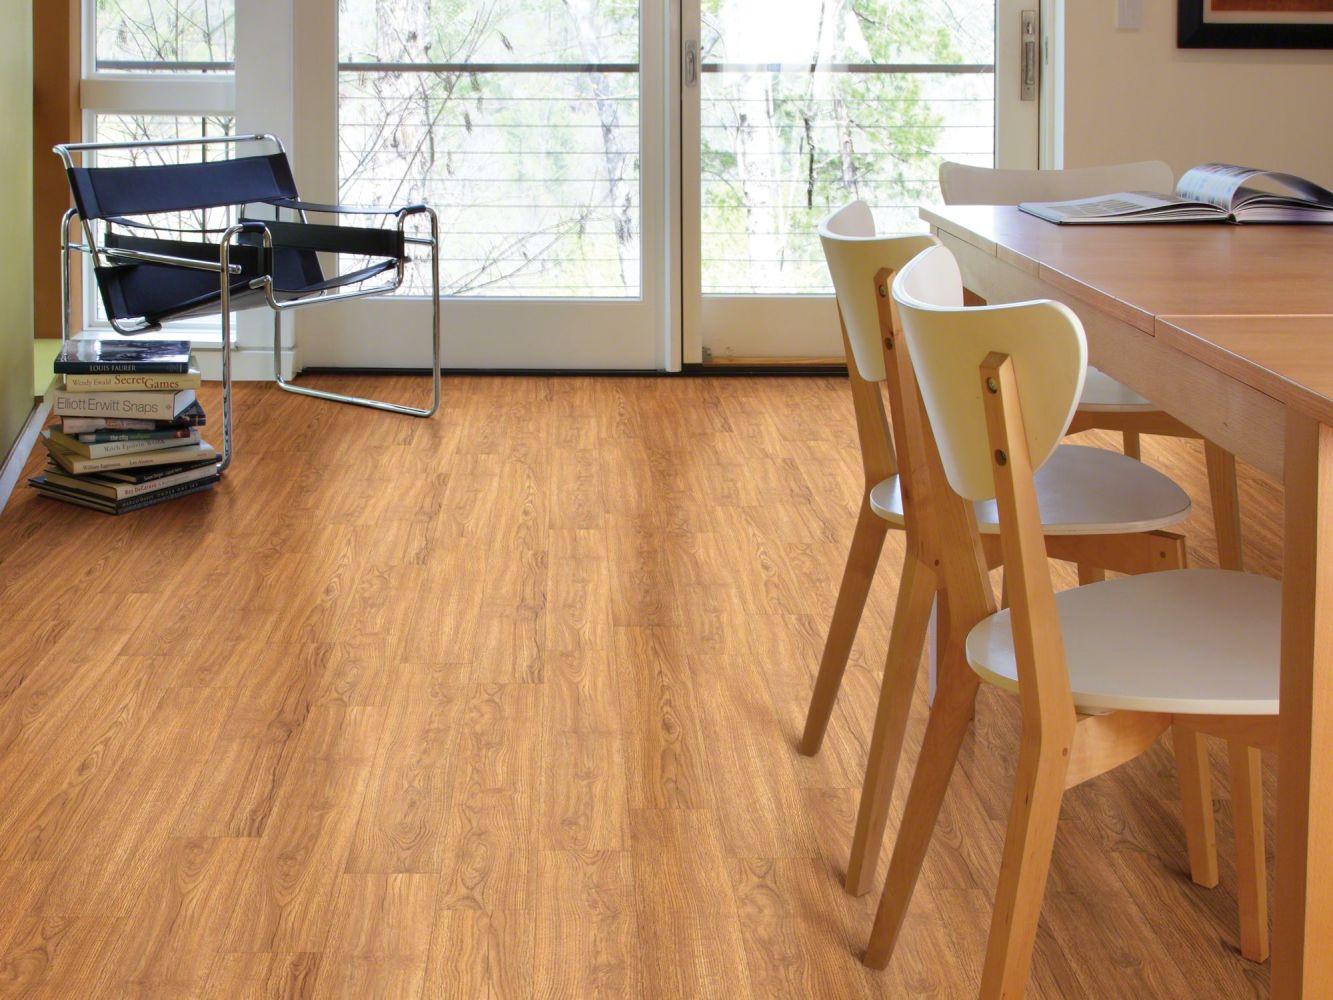 Shaw Floors Vinyl Residential New Market 6 Sweet Auburn 00260_0145V